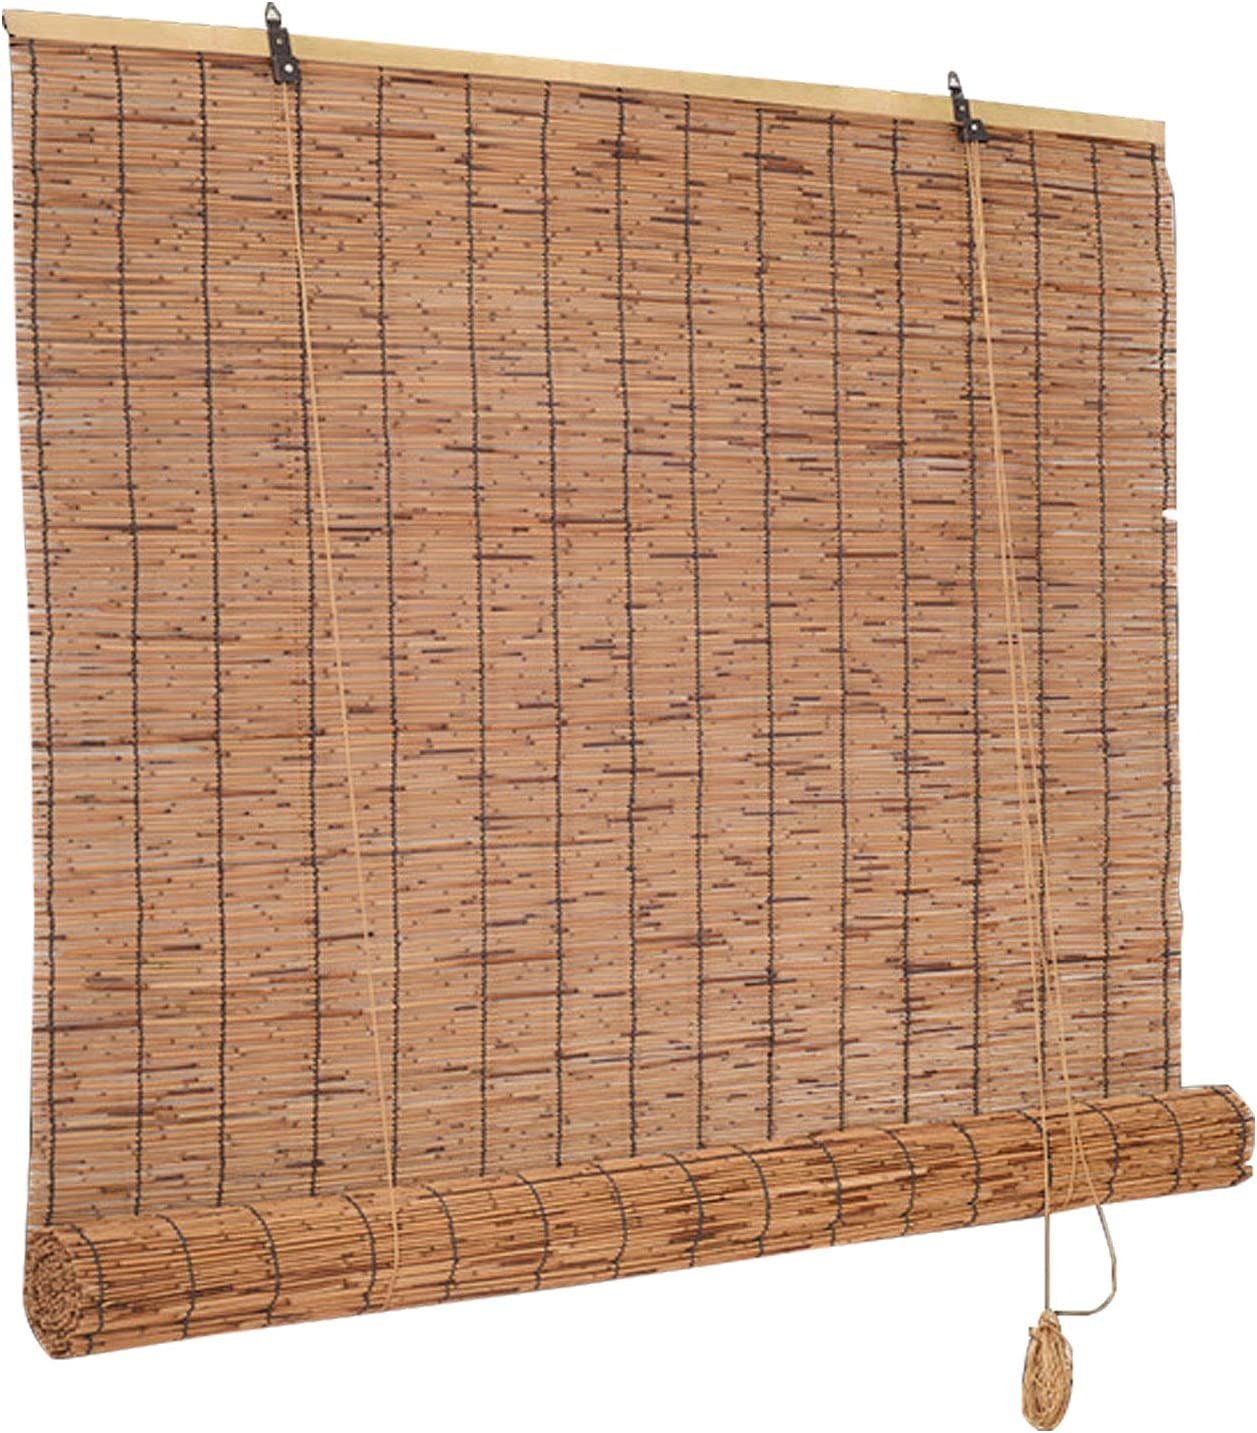 ZXLL Bamboo Blind for Cheap SALE Start Window Size Customizable Outdoor Reservation Bl Roller